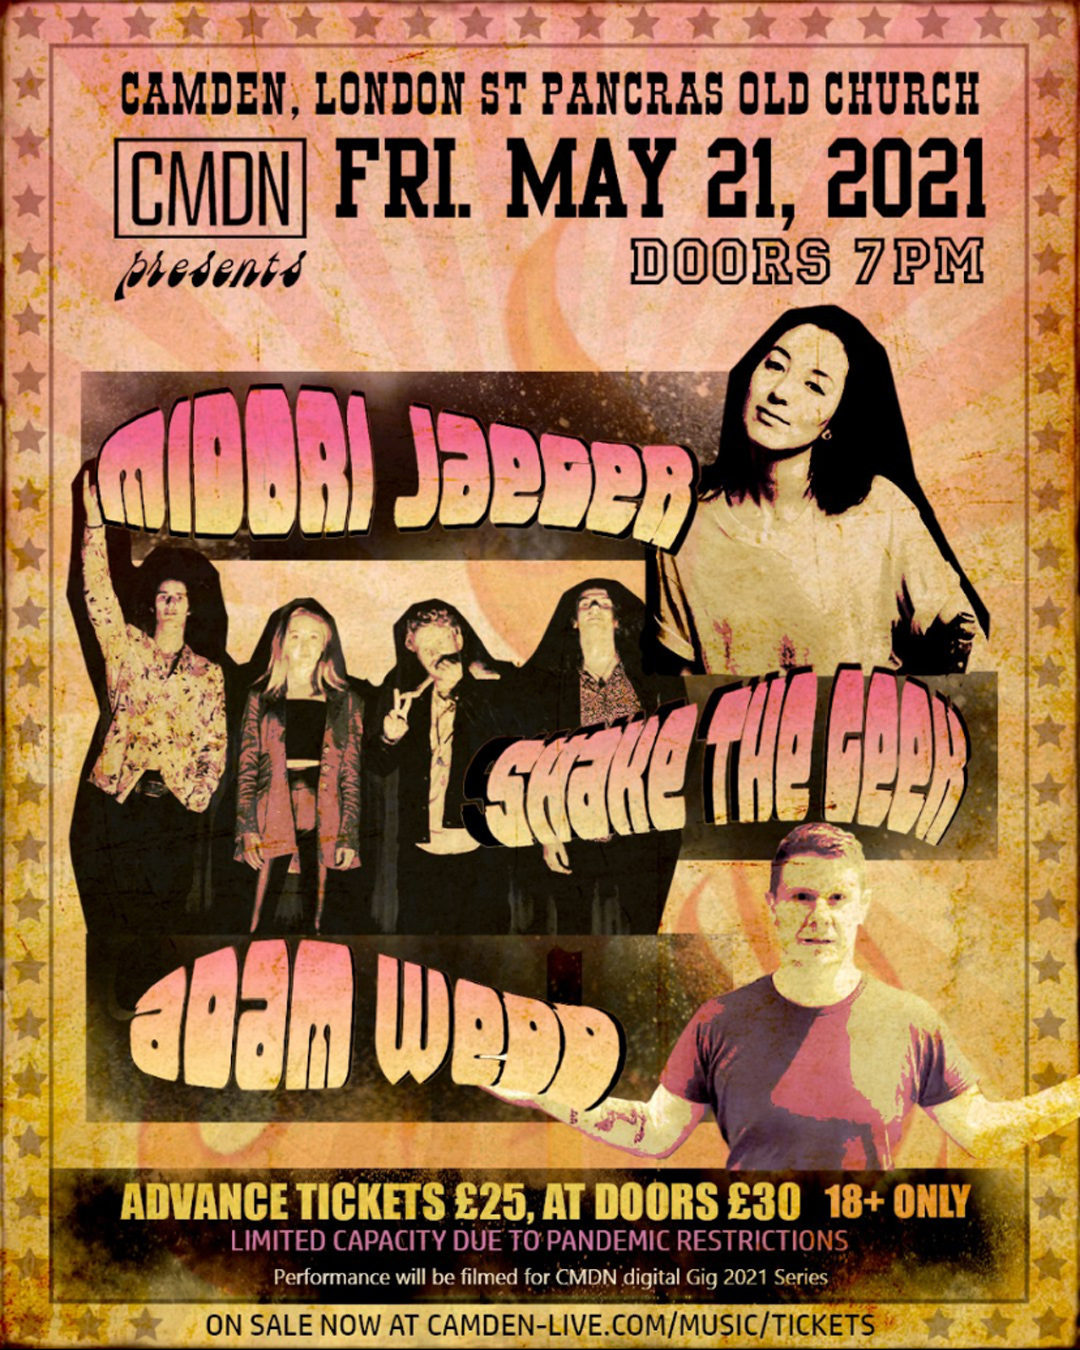 Shake the Geek - Midori Jaeger - Adam Wedd Play Live May 21